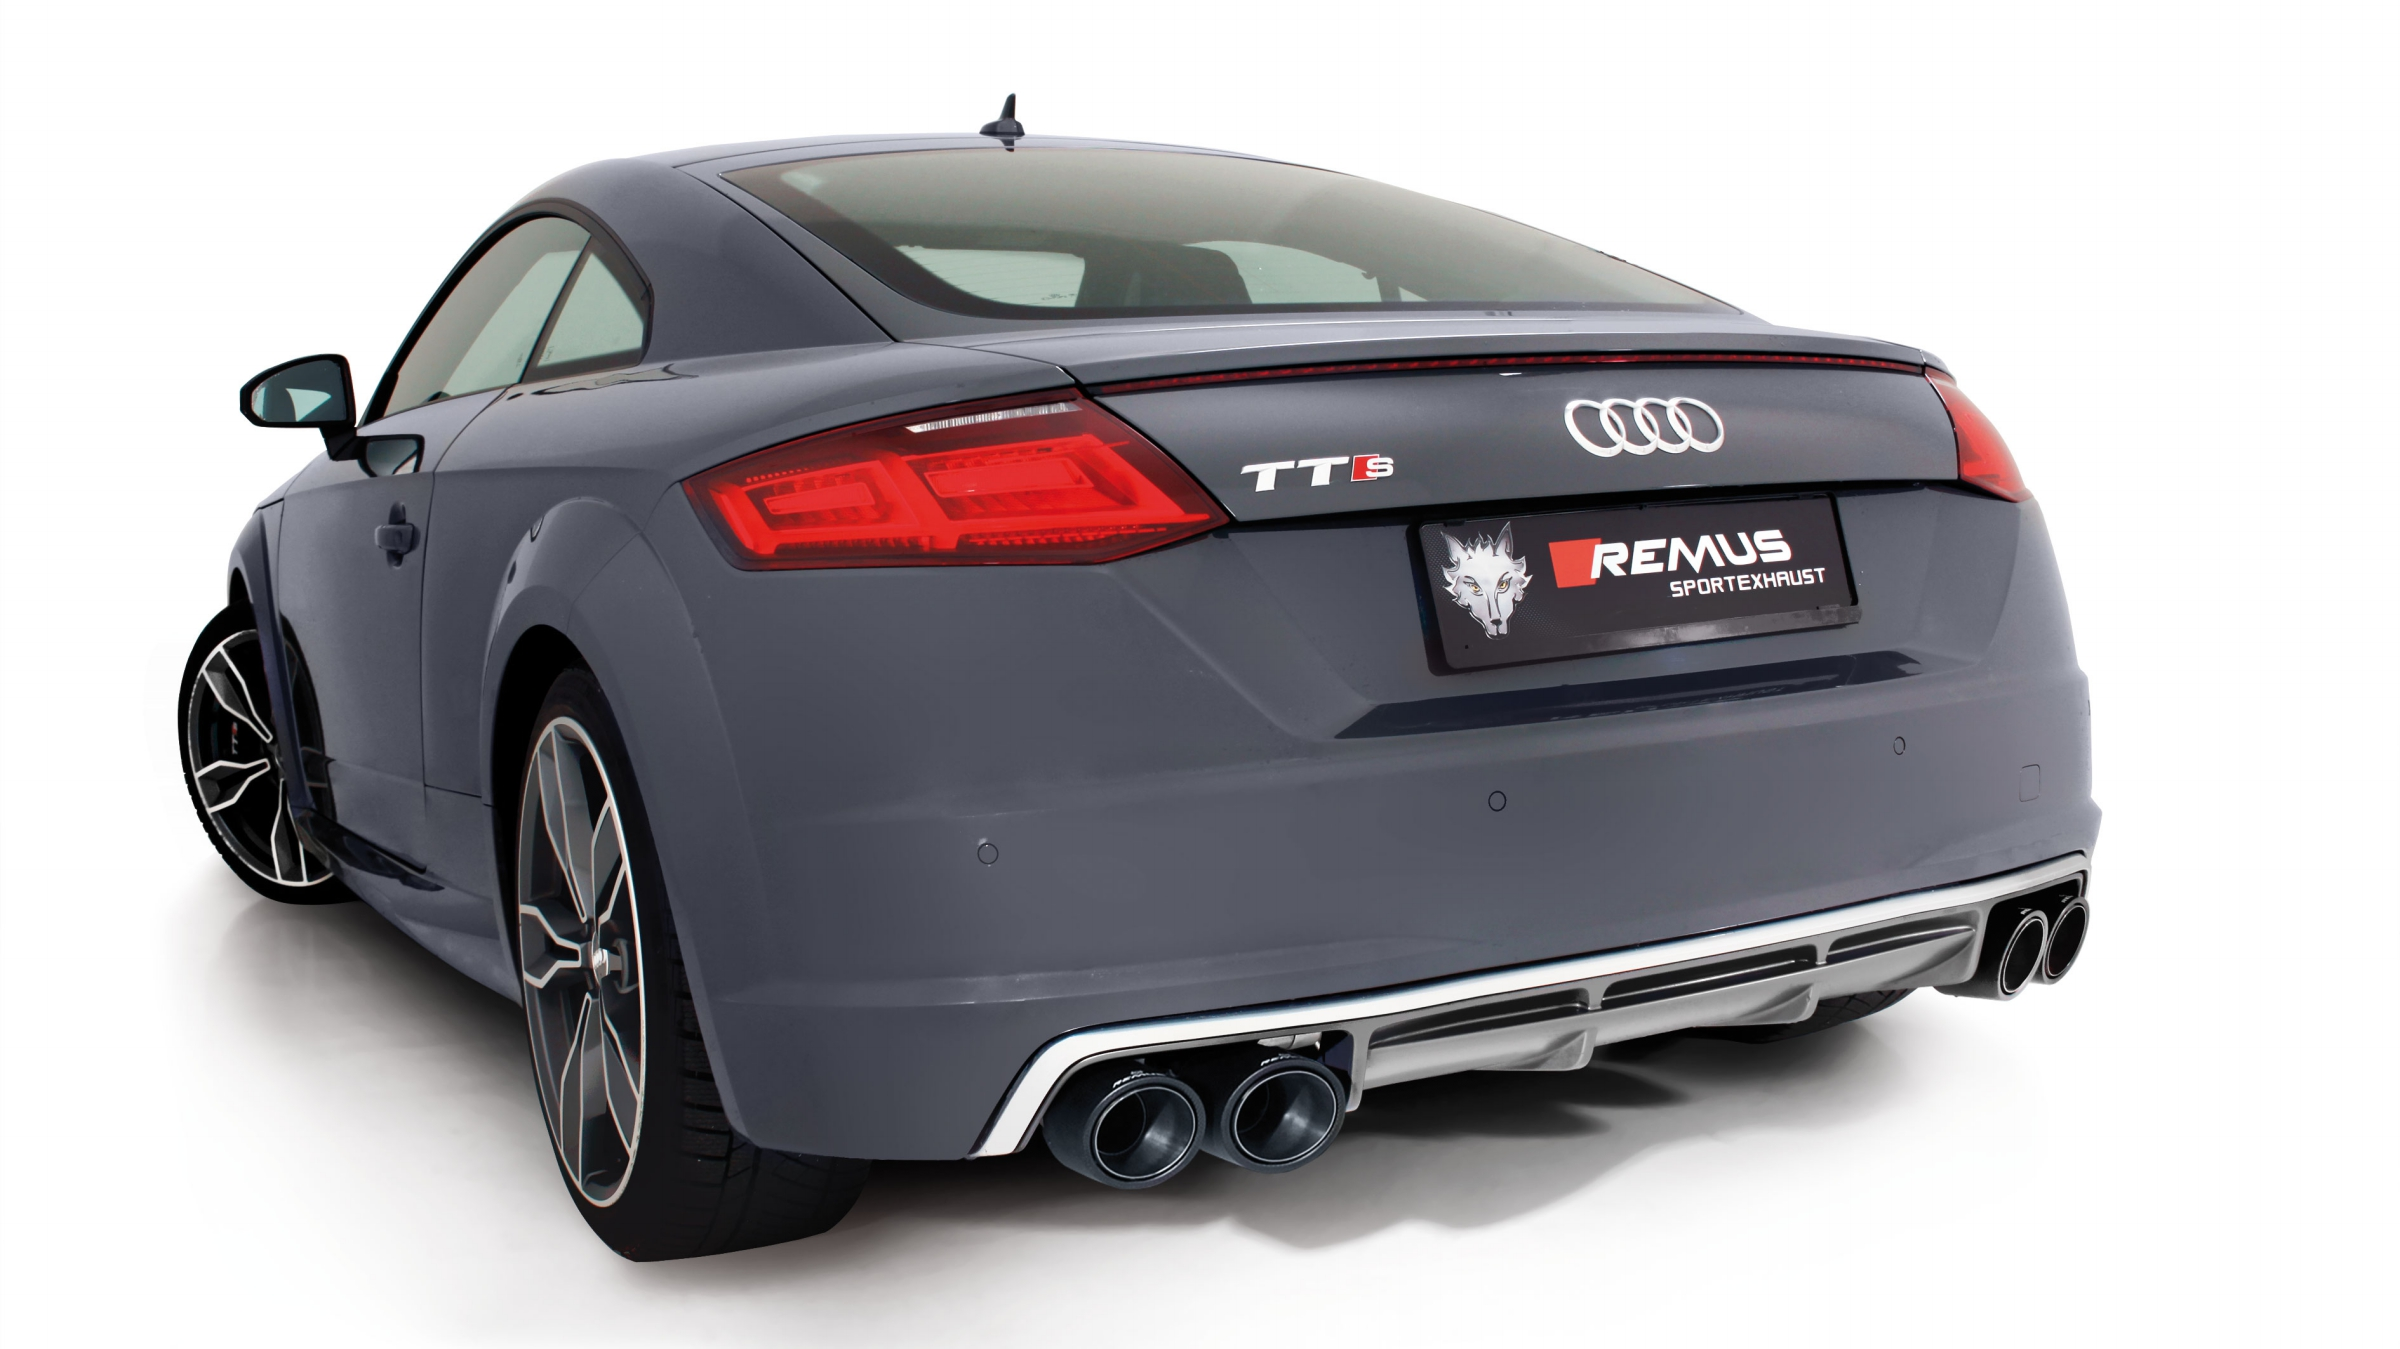 Remus The World Leader In Sport Exhausts